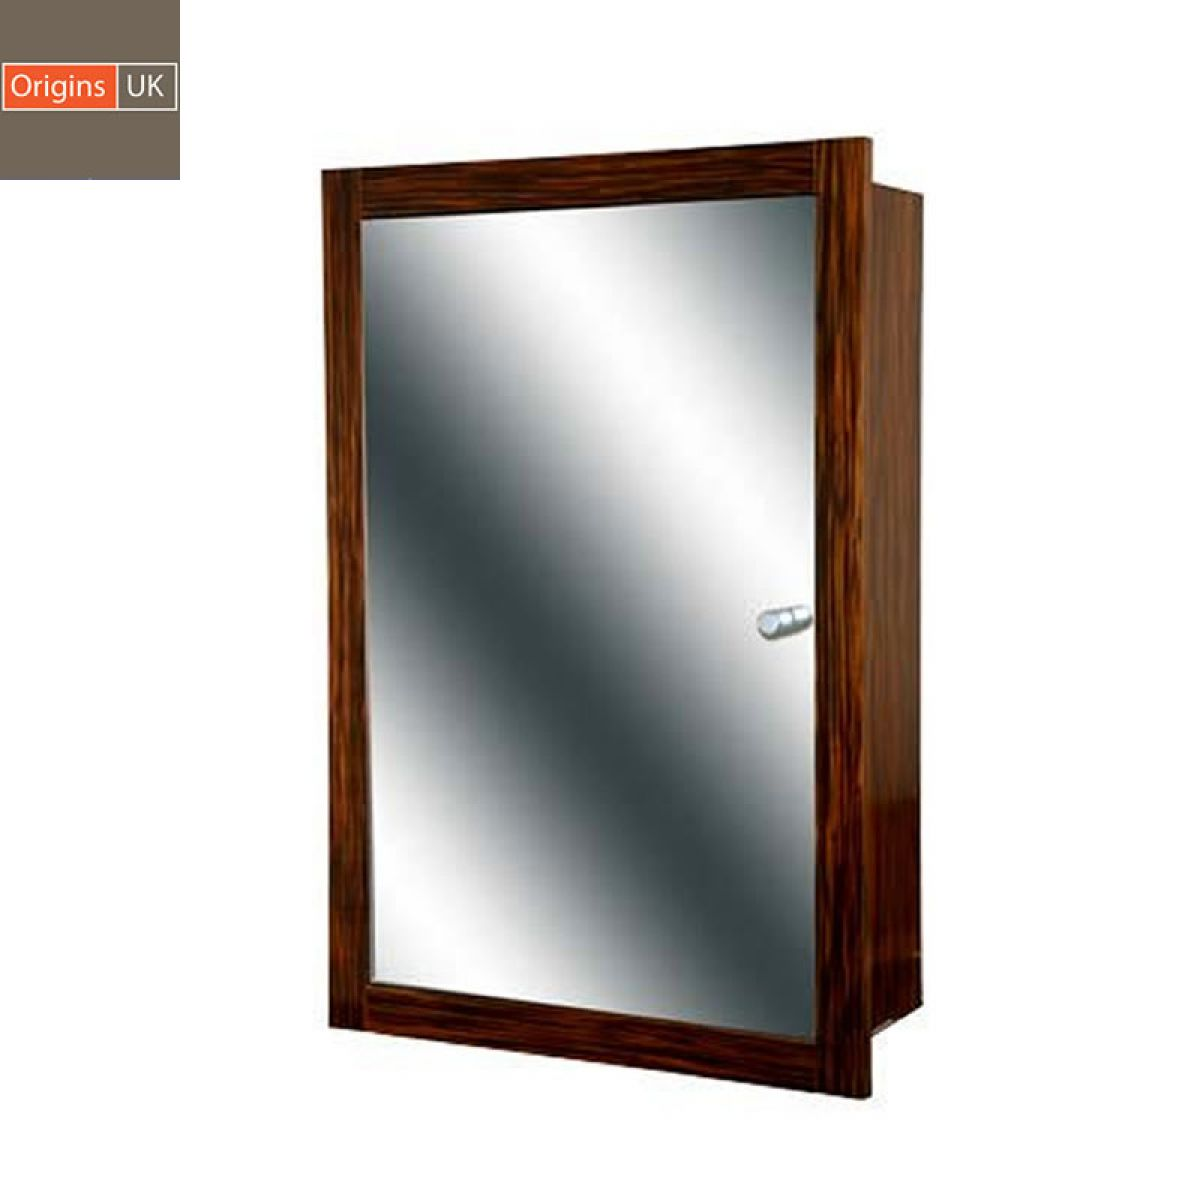 mirror door bathroom cabinet origins single door recessed mirror cabinet uk bathrooms 19477